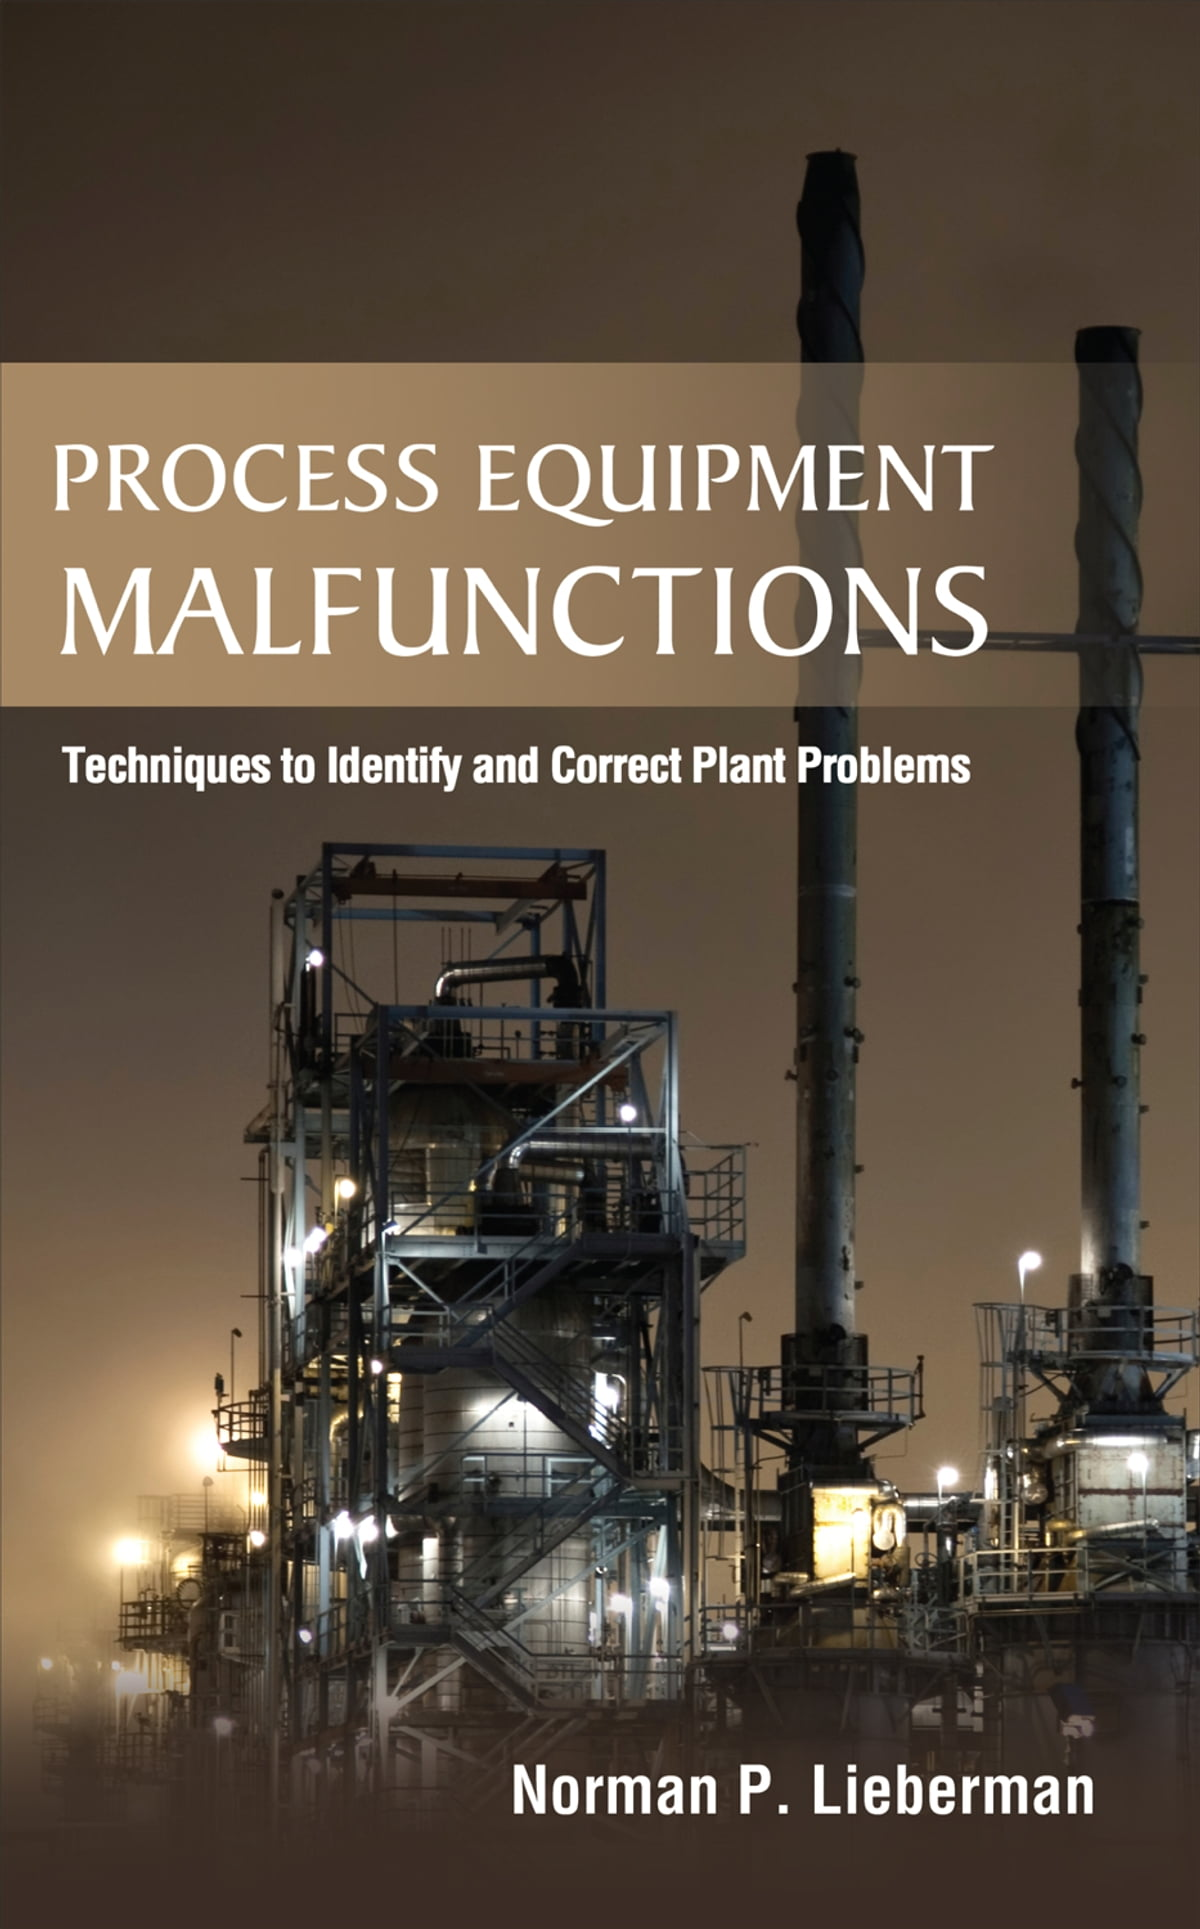 Process Equipment Malfunctions: Techniques to Identify and Correct Plant  Problems eBook by Norman P. Lieberman - 9780071770217 | Rakuten Kobo